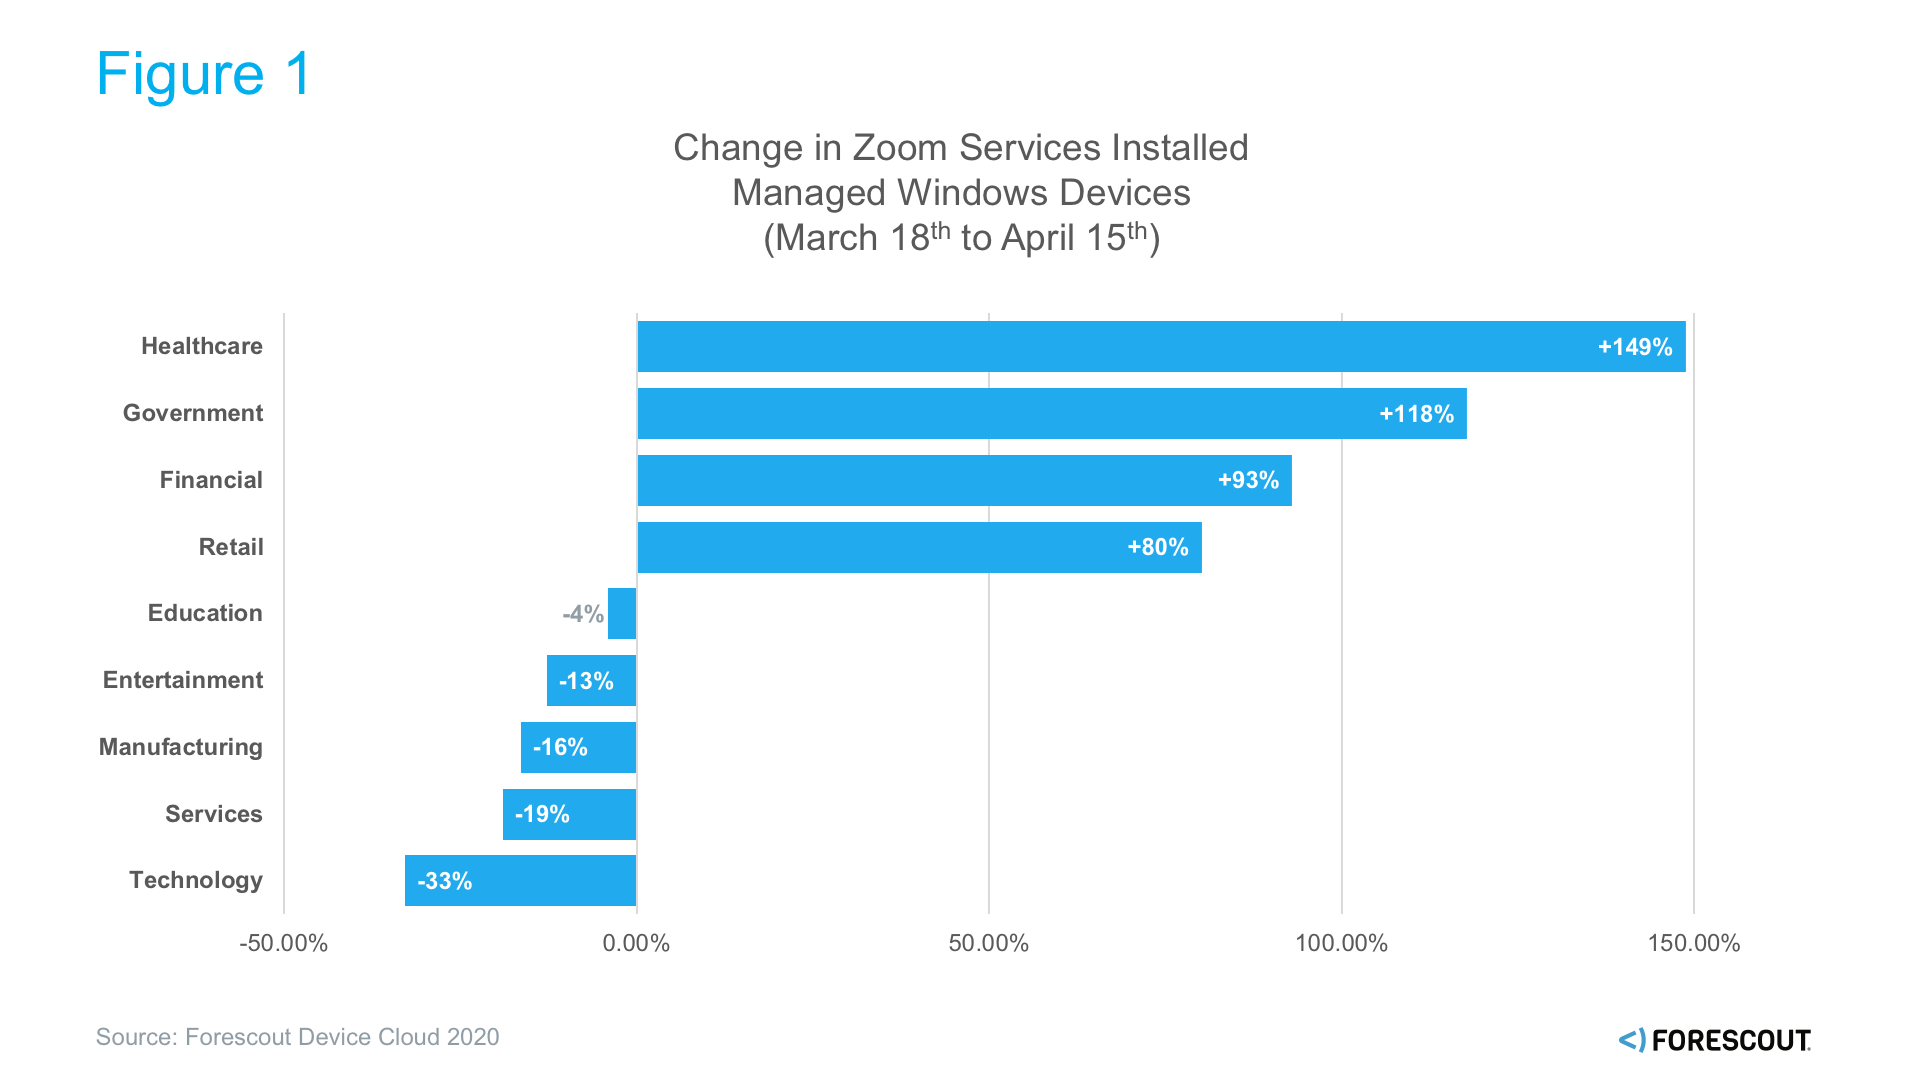 Change In Zoom Services Installed